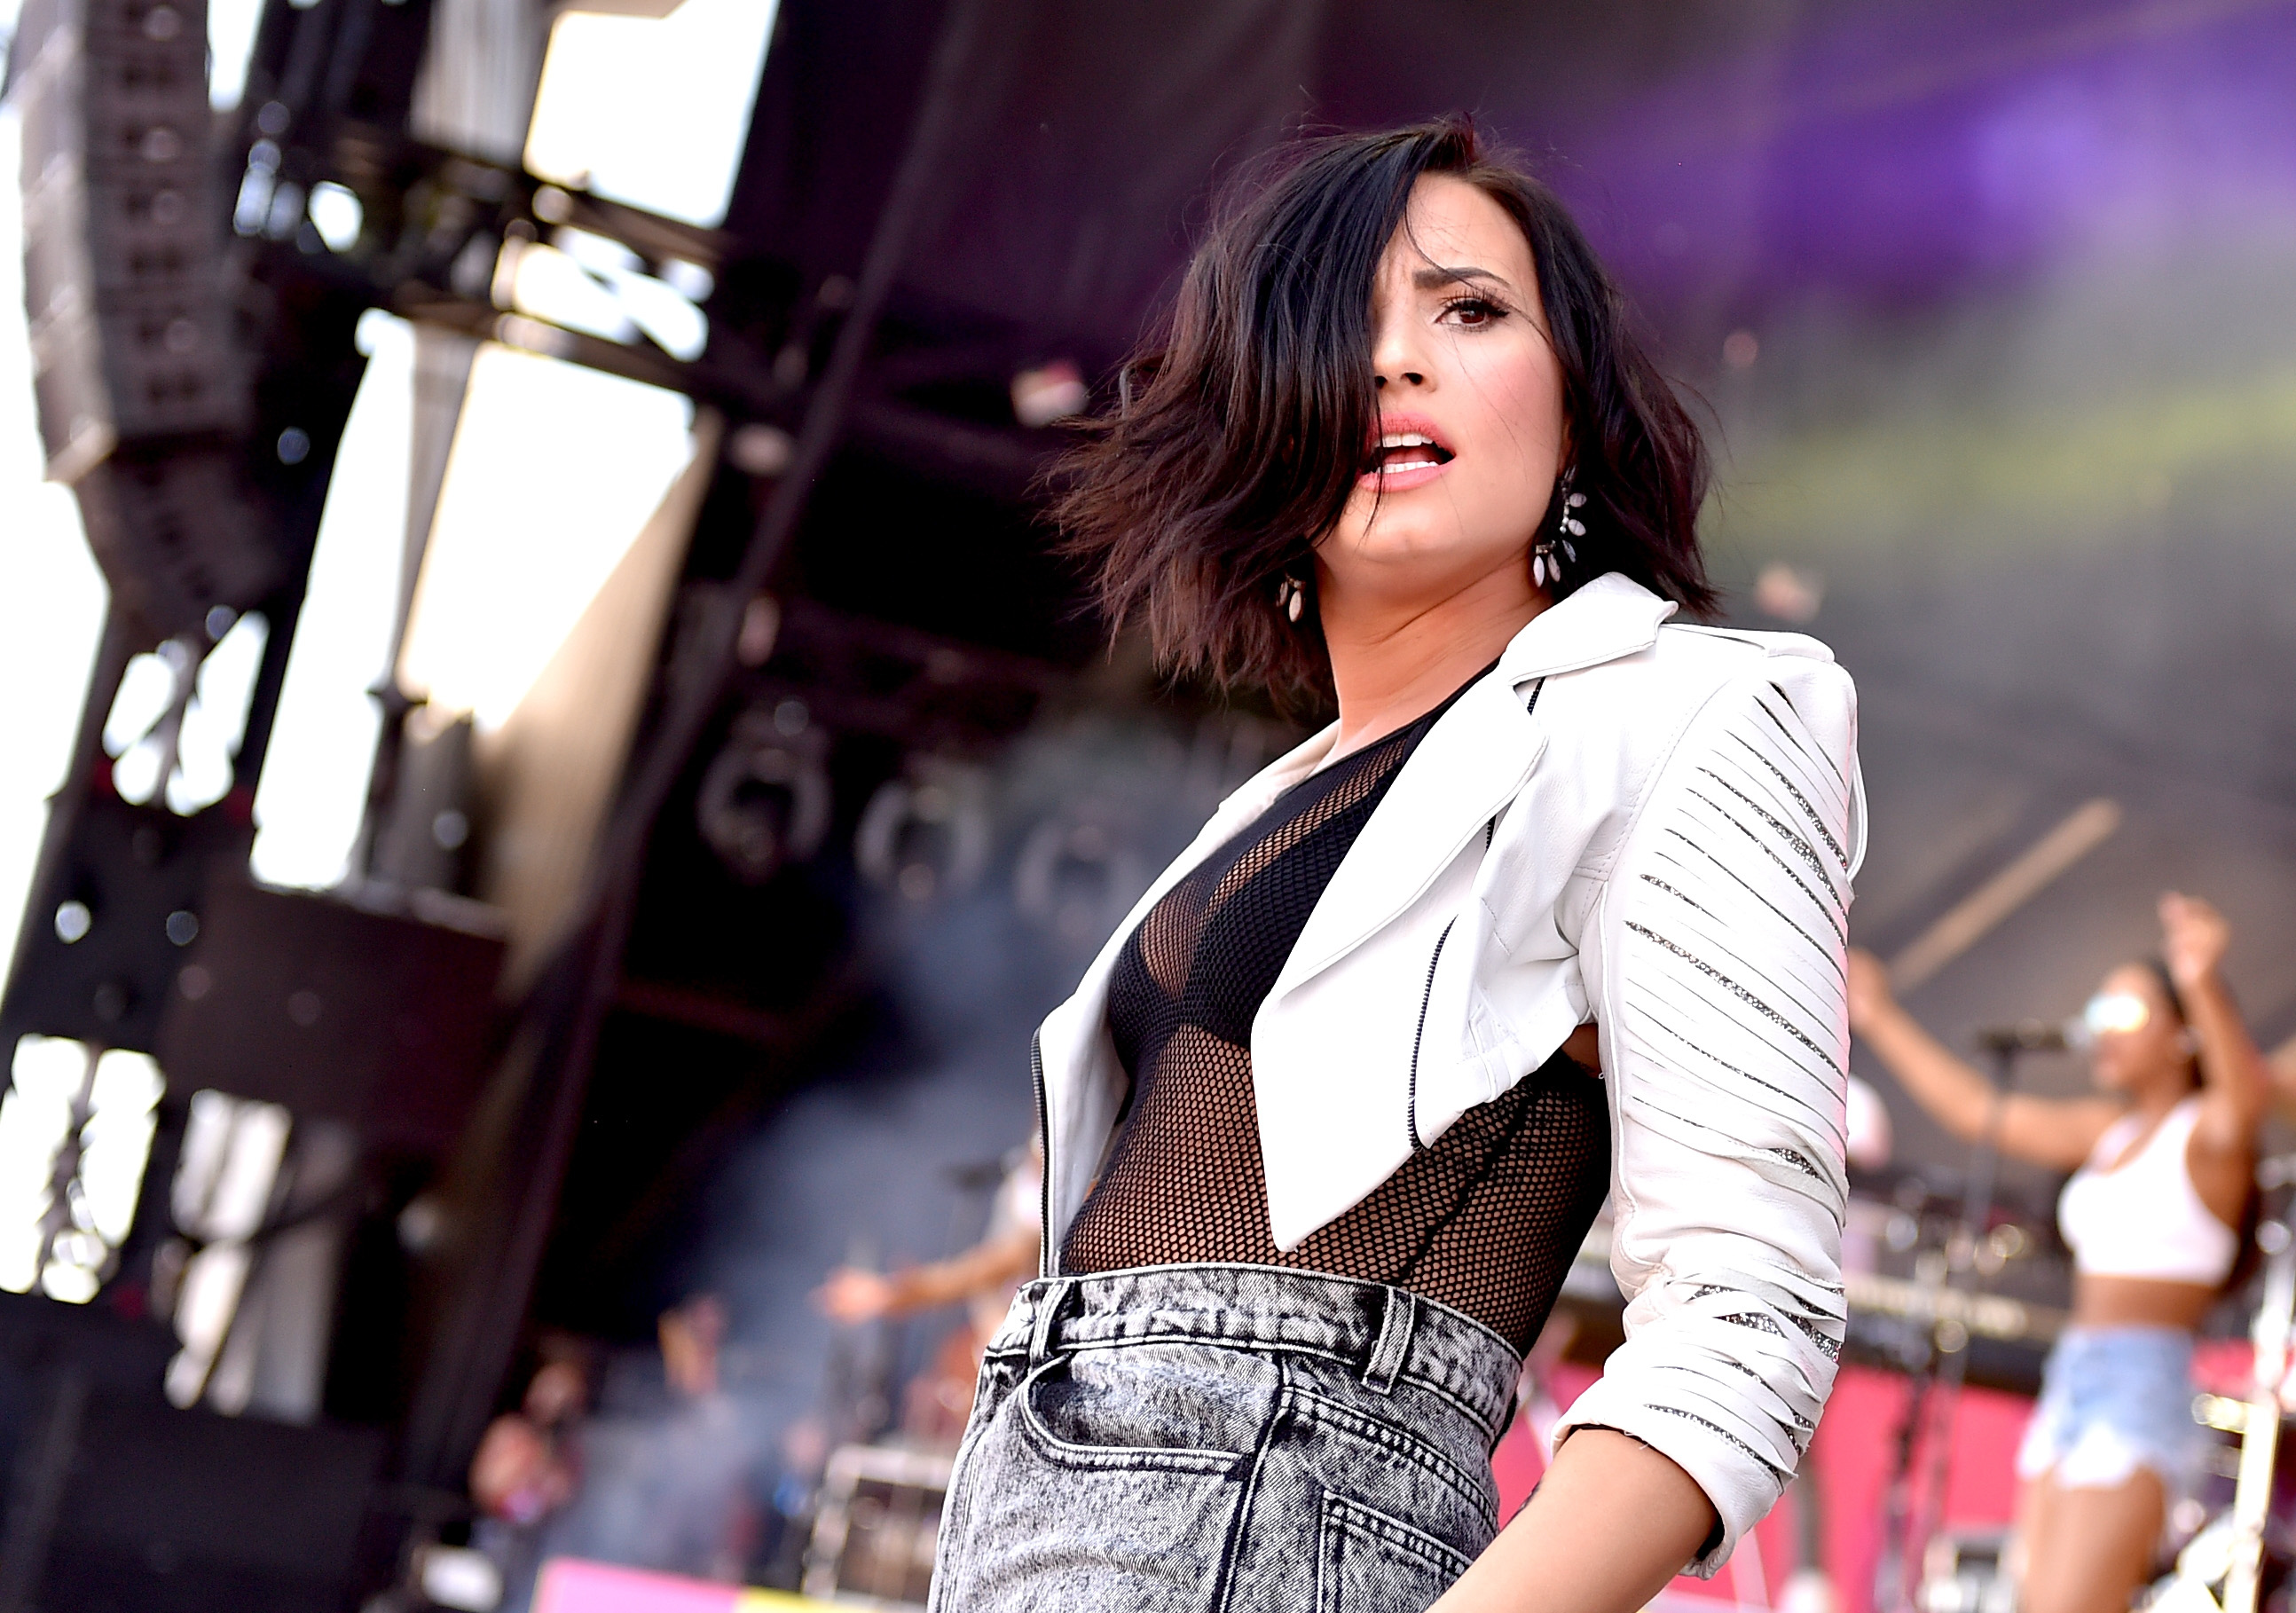 Demi Lovato performs onstage at The Daytime Village on Sept. 19, 2015 in Las Vegas.